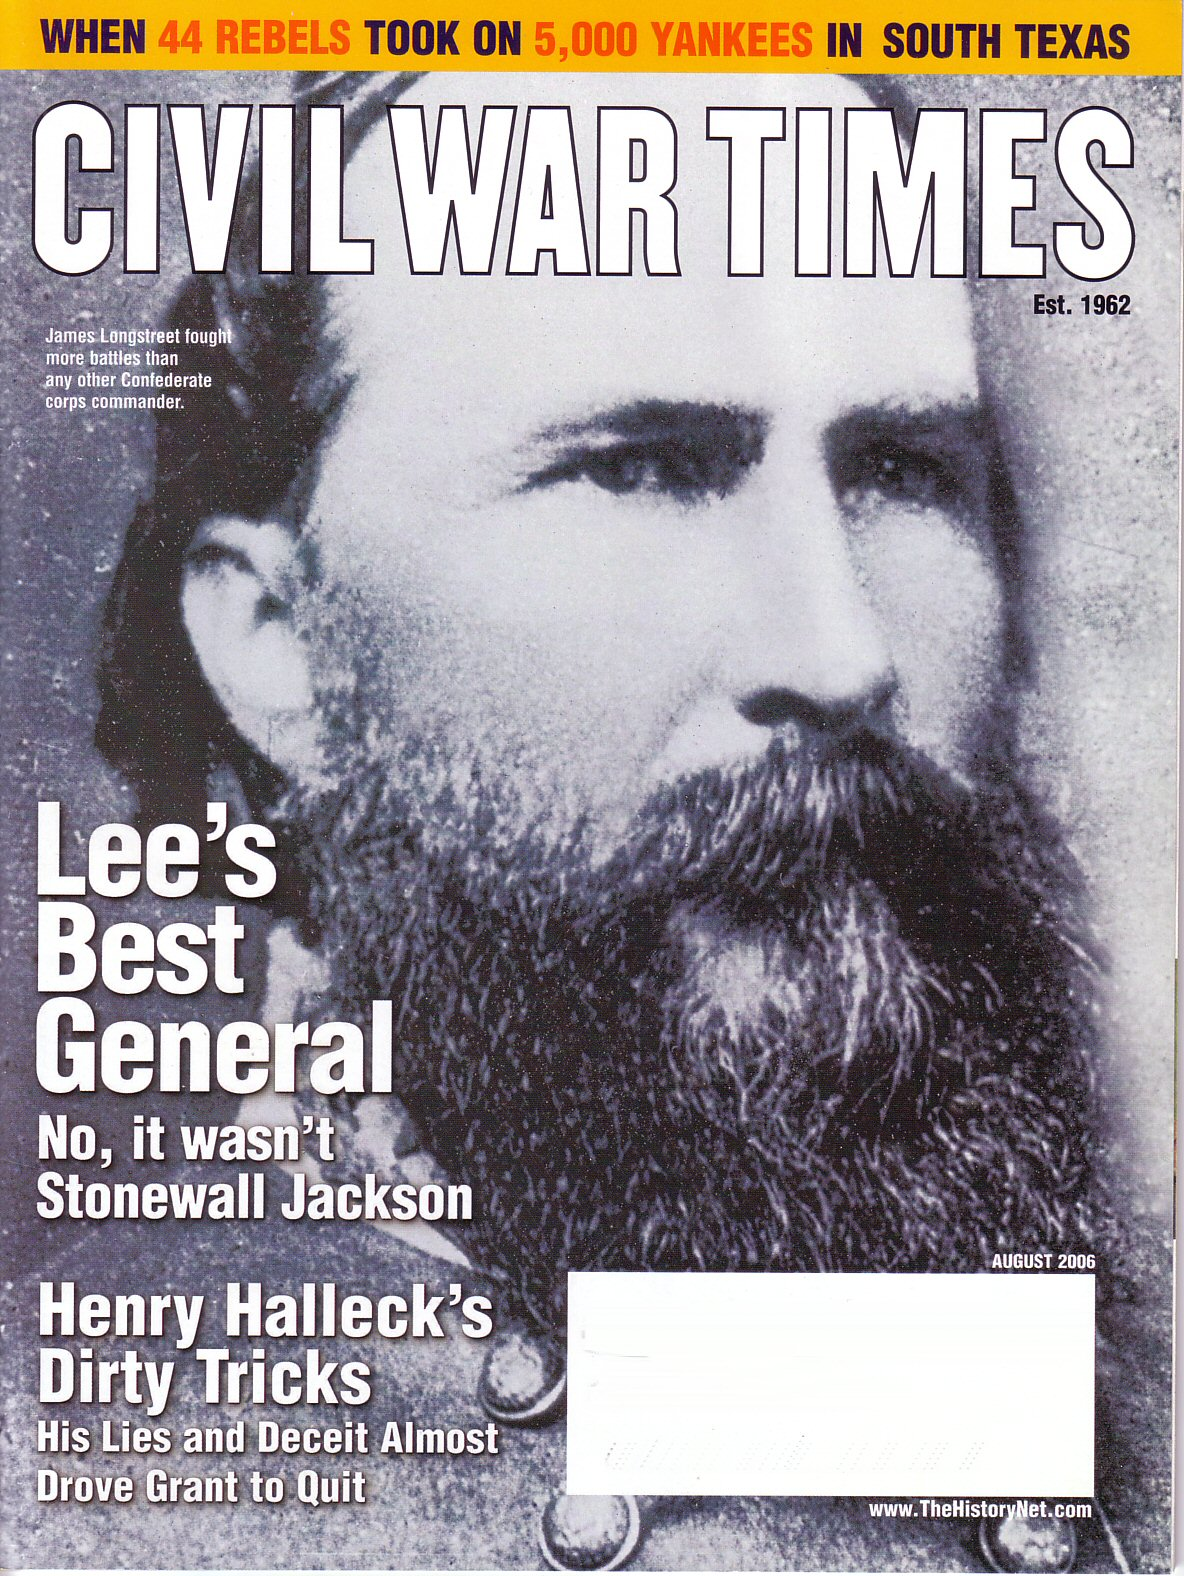 Civil War Times, Volume 45, Number 6 (August 2006)